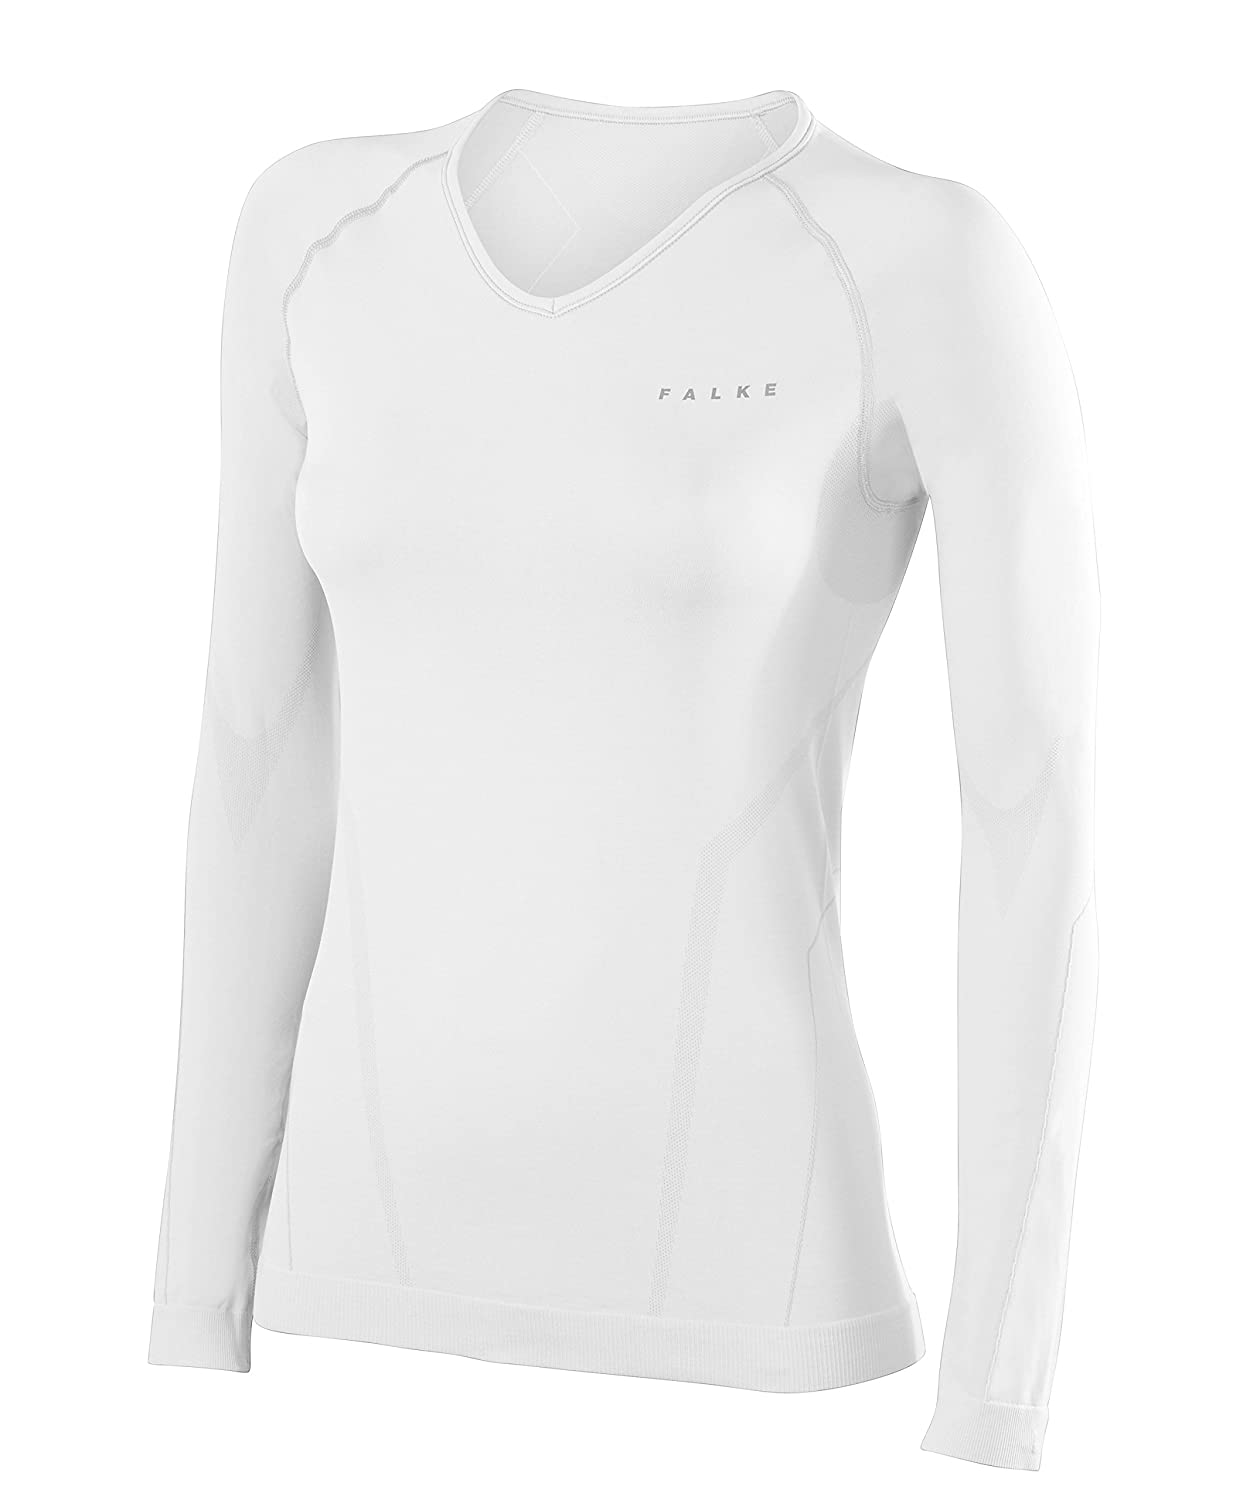 Falke Women's Long Sleeve Warm Comfort Thermal Underwear Shirt FALAH|#FALKE 39110